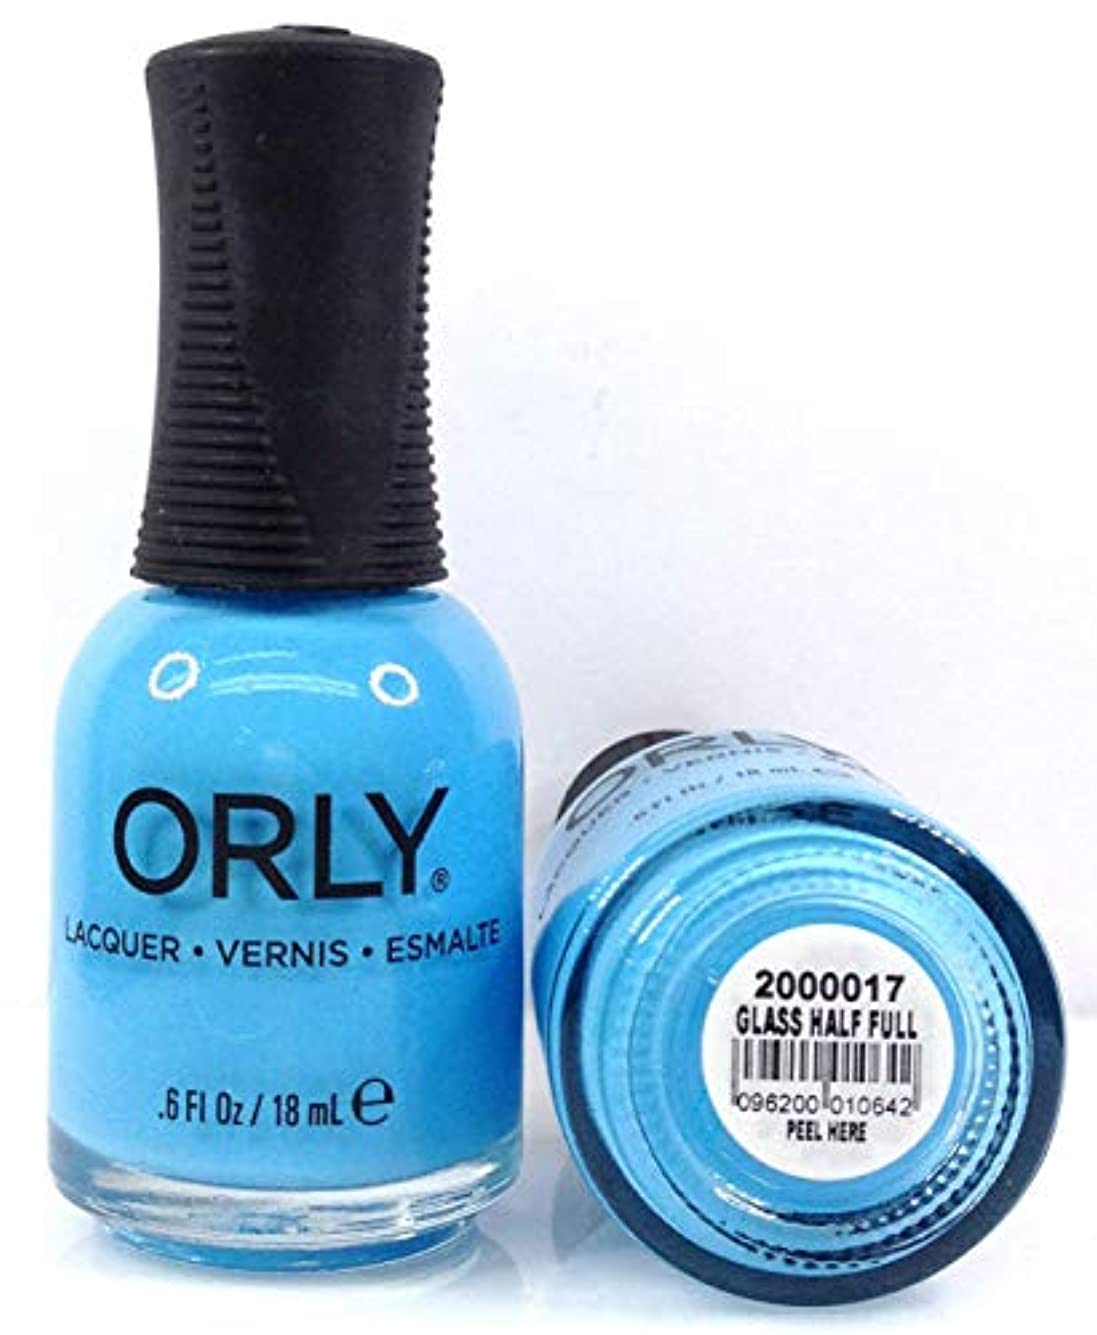 Orly Nail Lacquer - Radical Optimism 2019 Collection - Glass Half Full - 0.6 oz / 18 mL